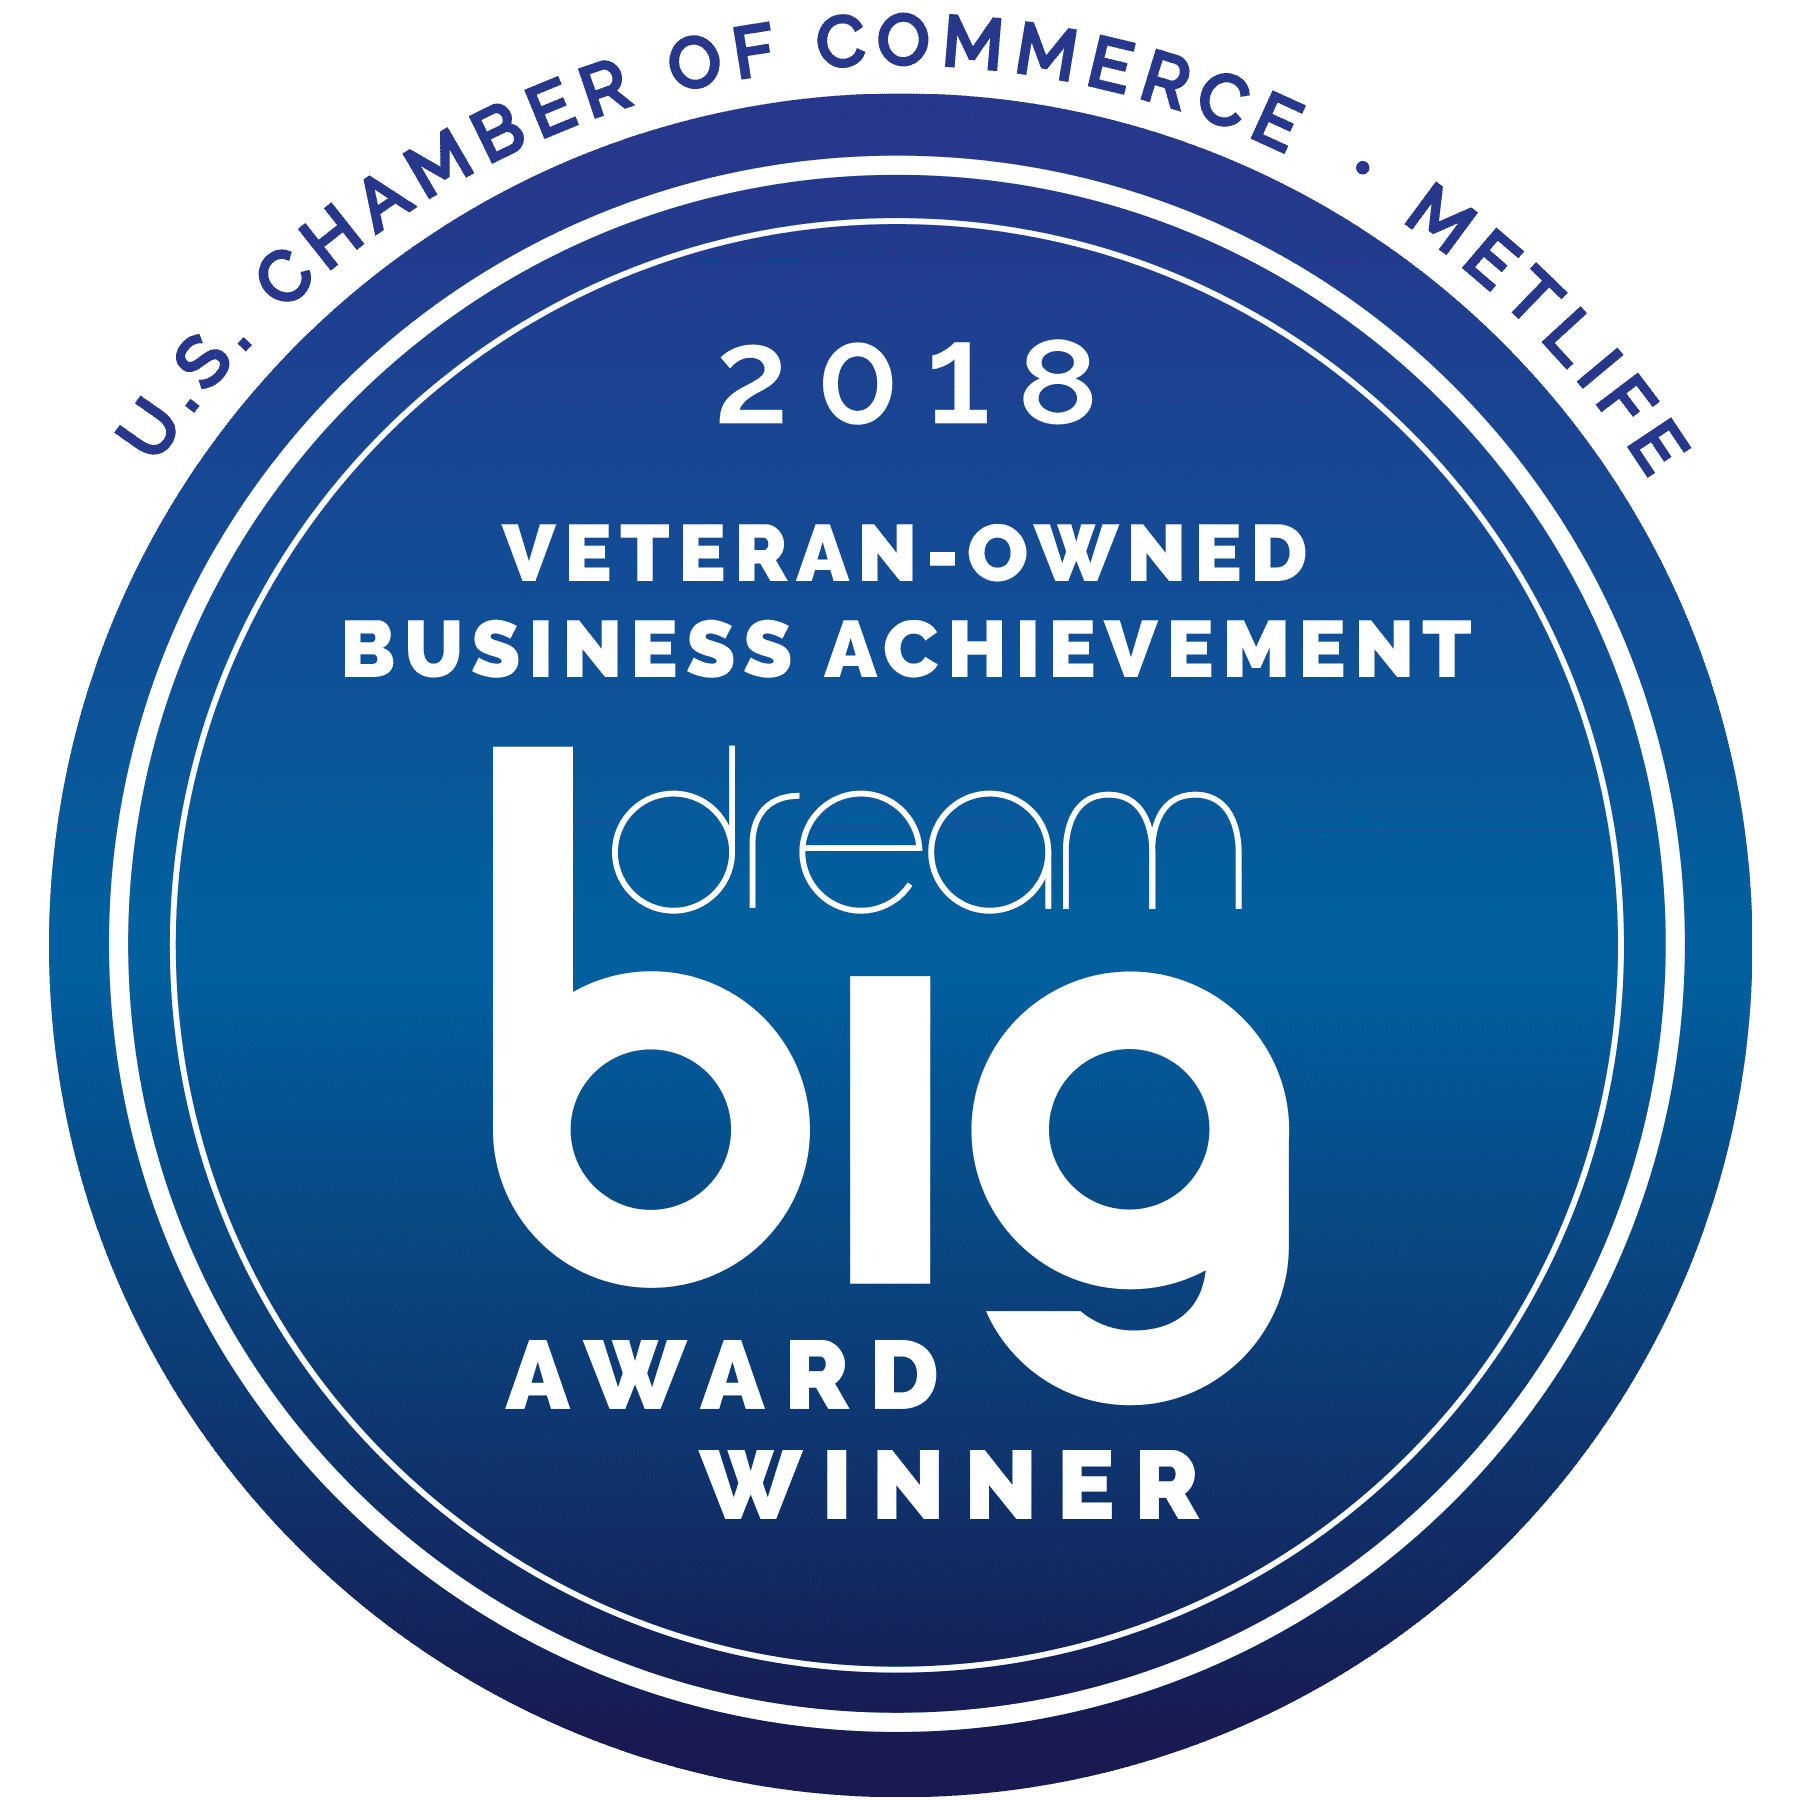 Dream Big Award